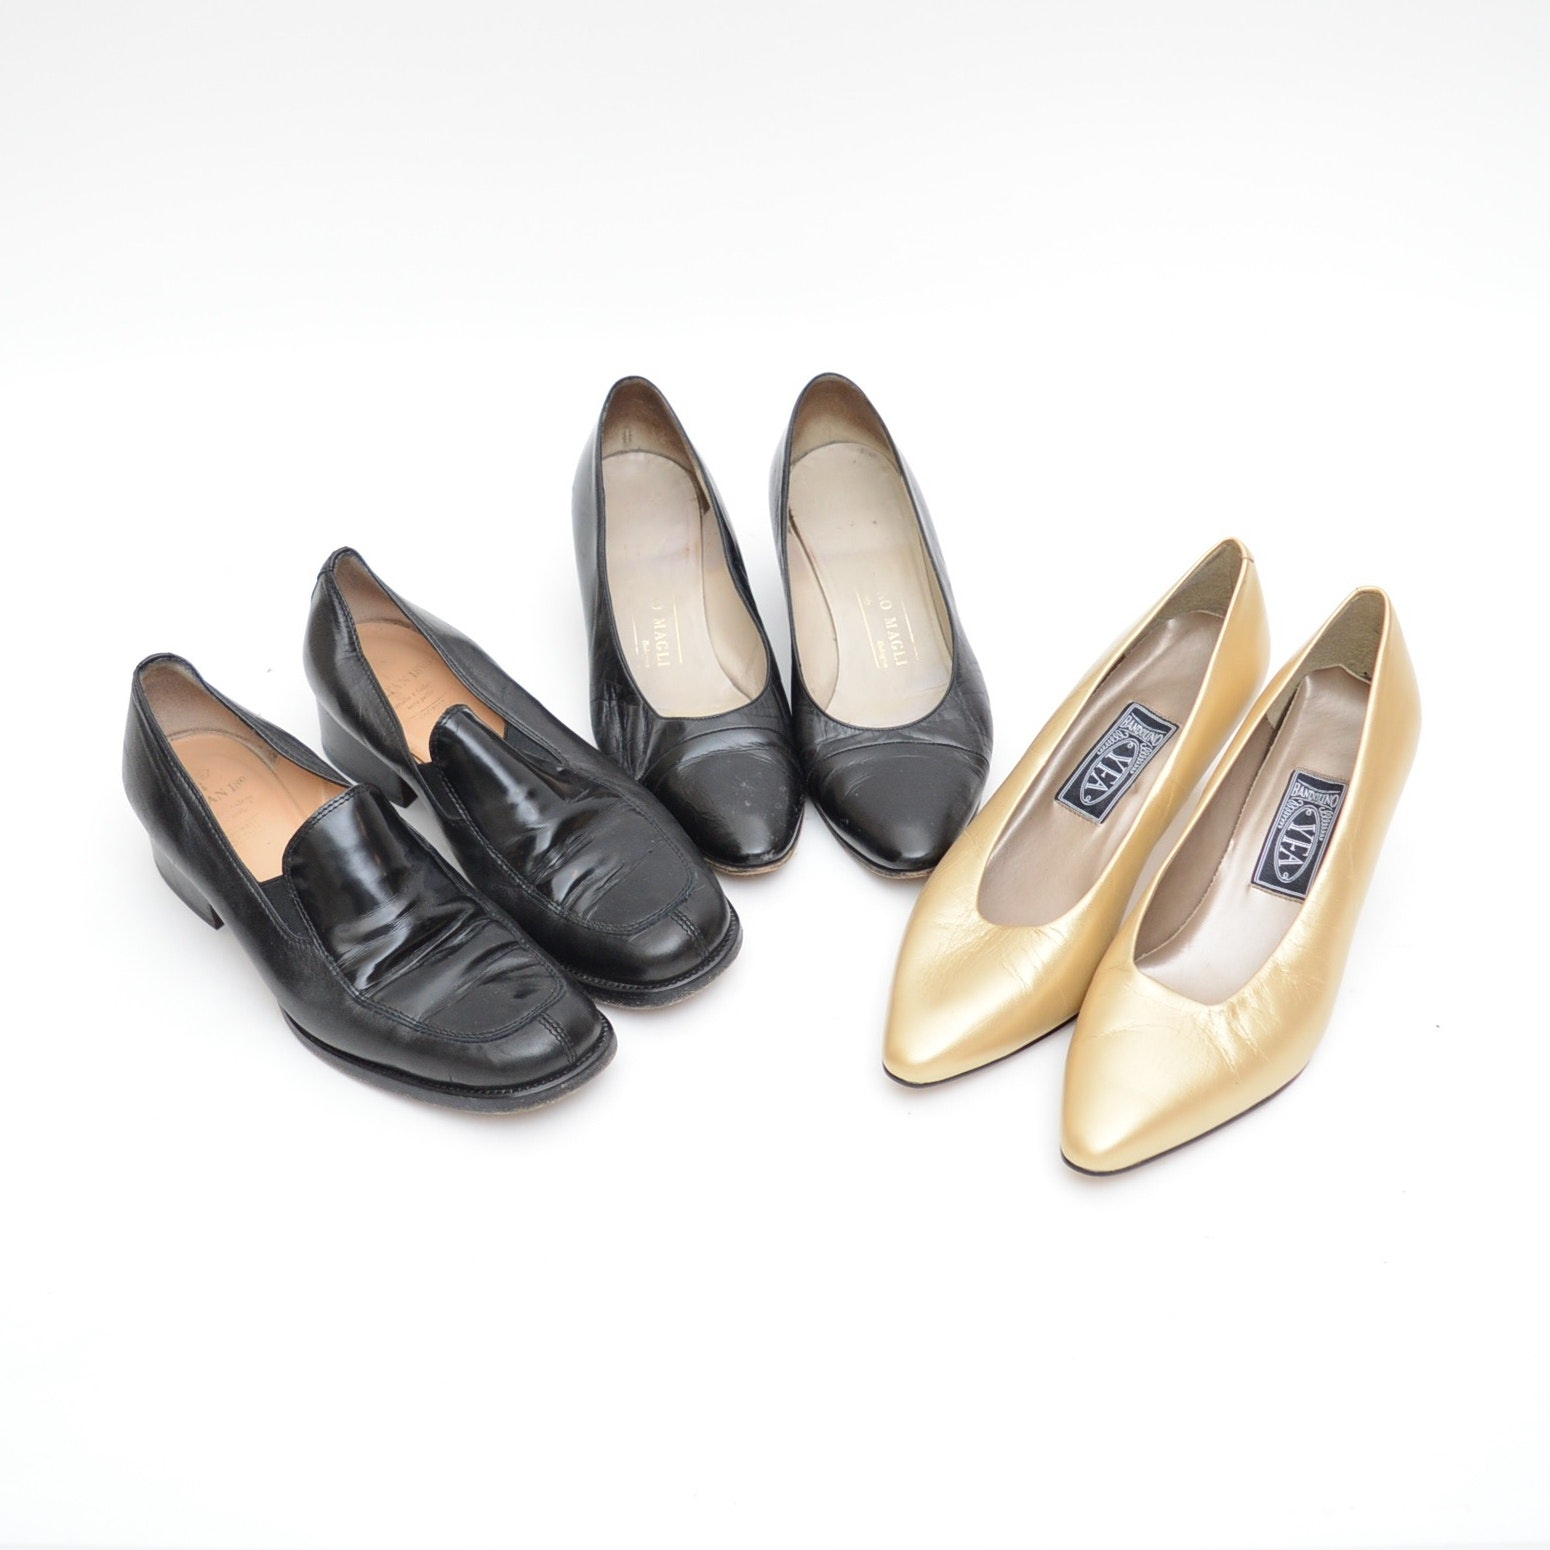 Collection of Women's Leather Shoes including Bruno Magli